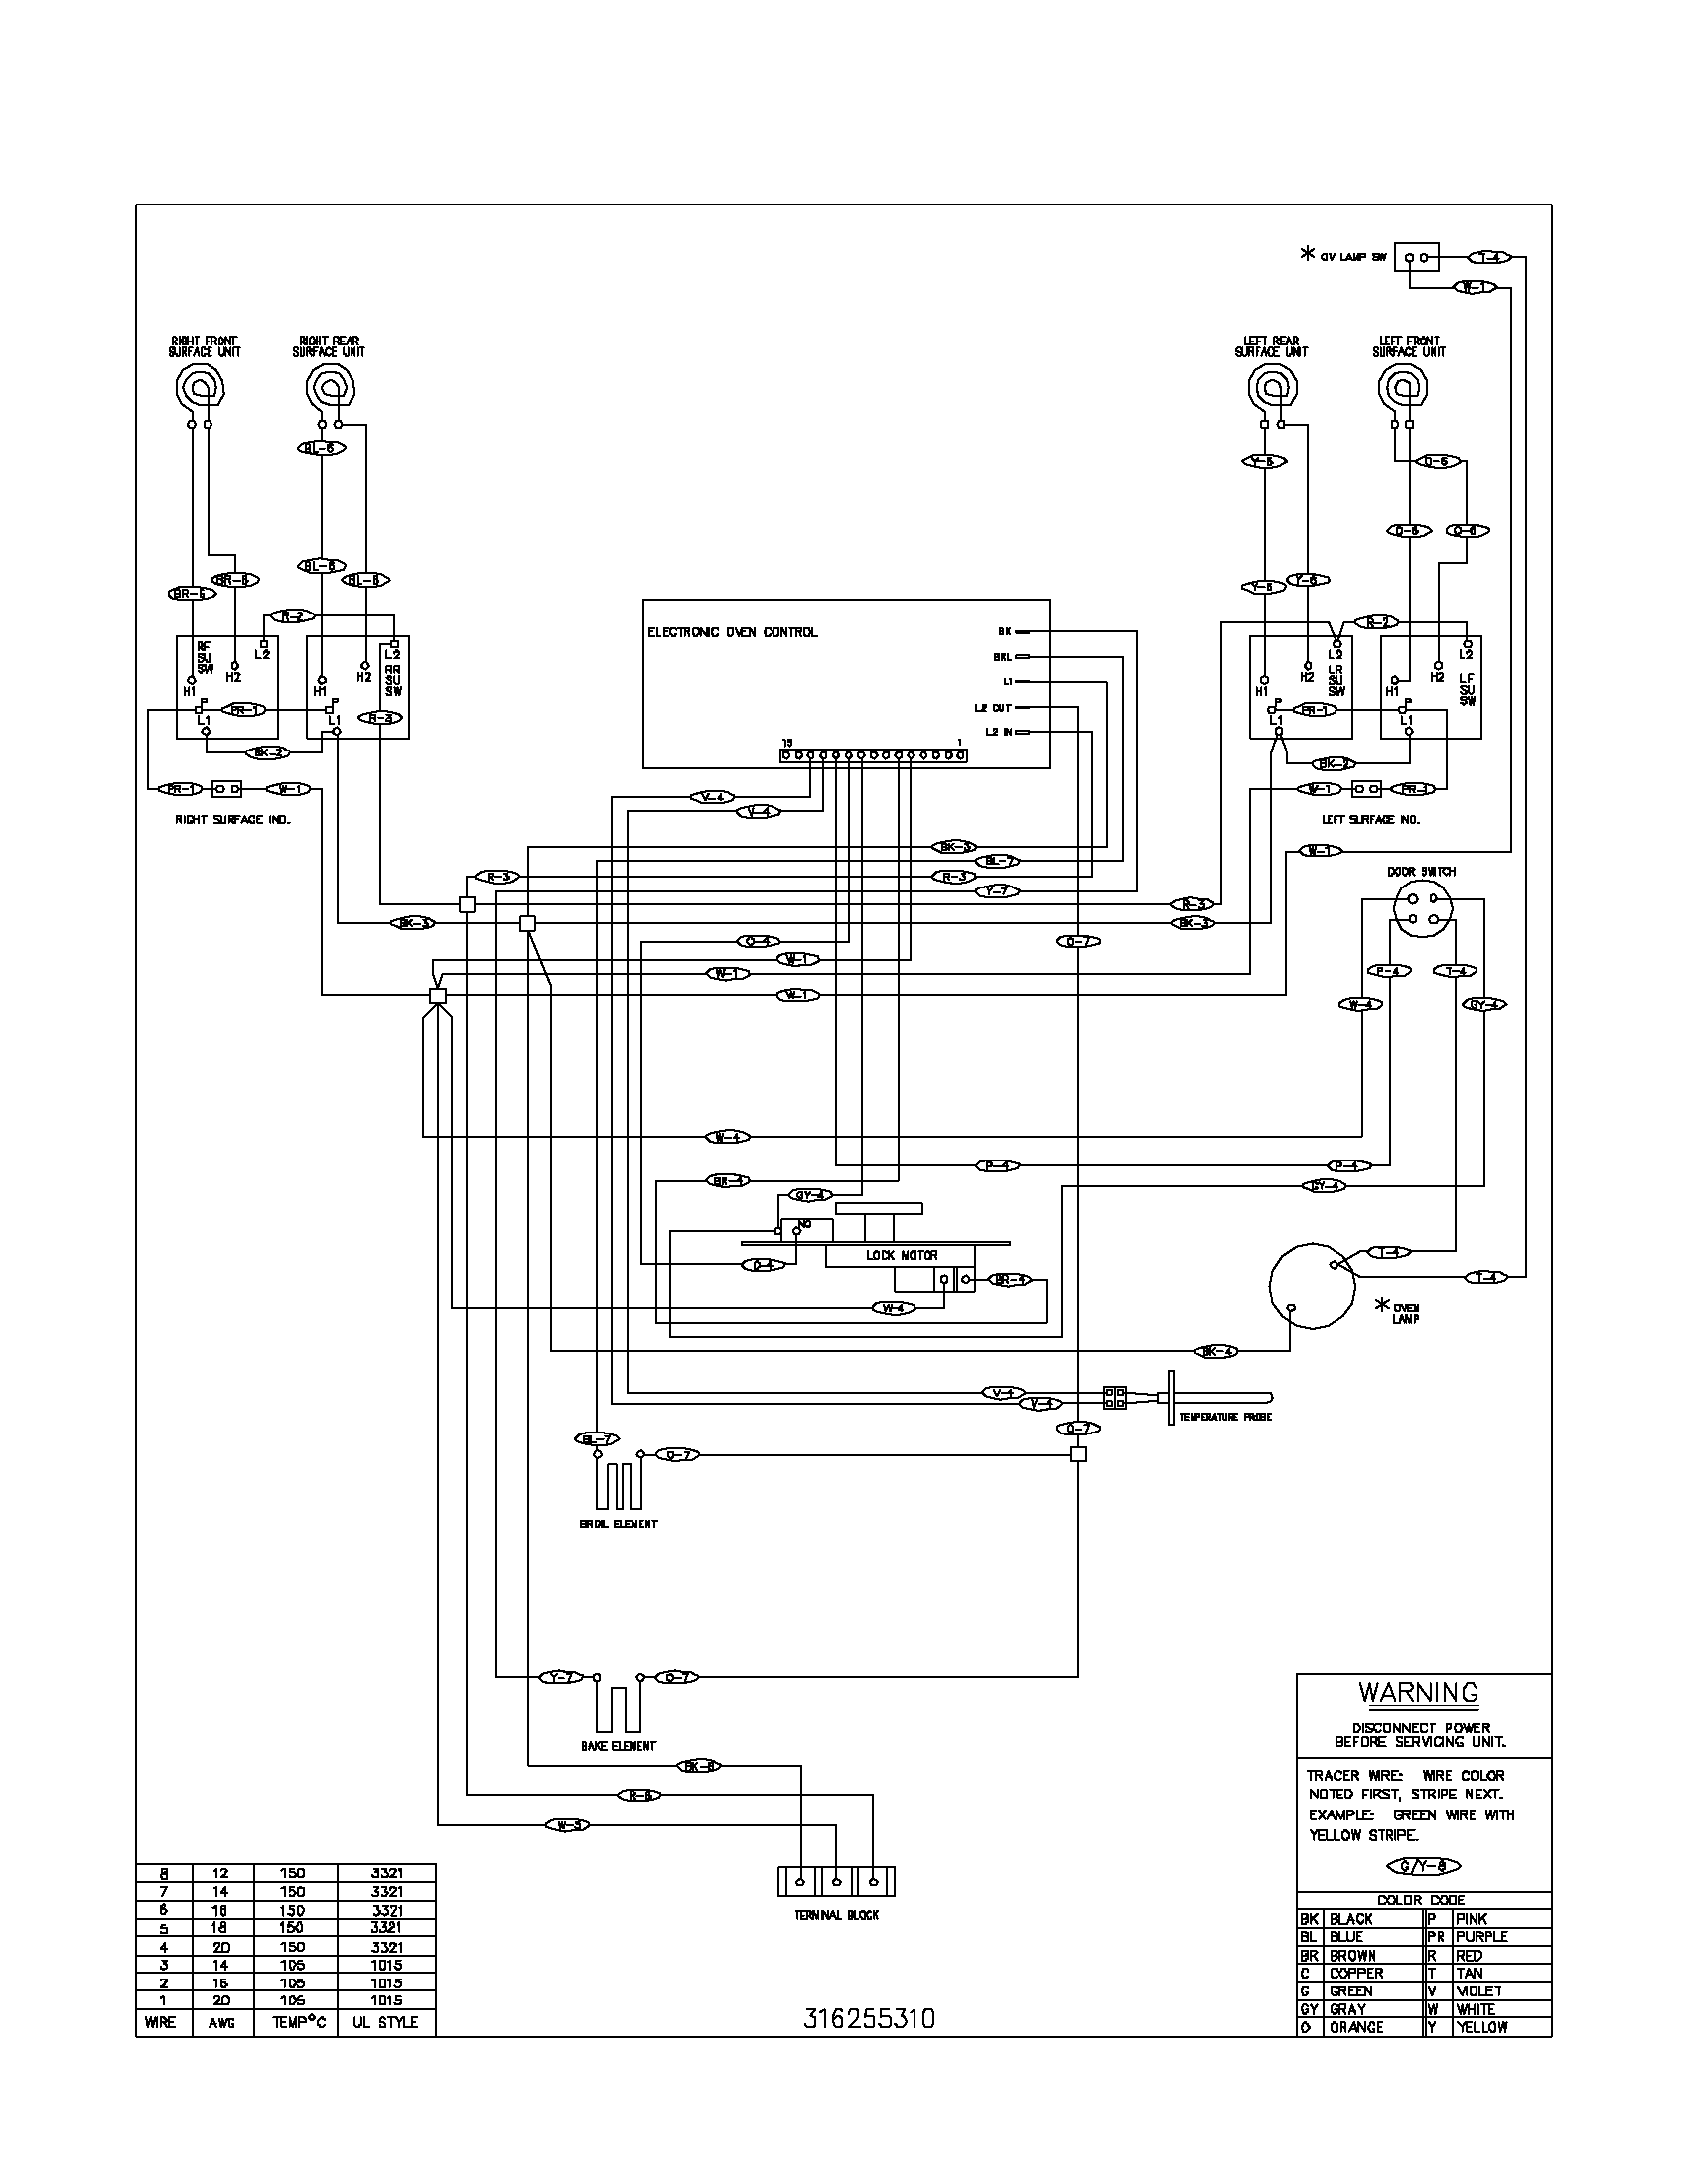 hight resolution of kelvinator model kef355asg free standing electric genuine parts general electric refrigerator wiring diagrams kelvinator refrigerator wiring diagram